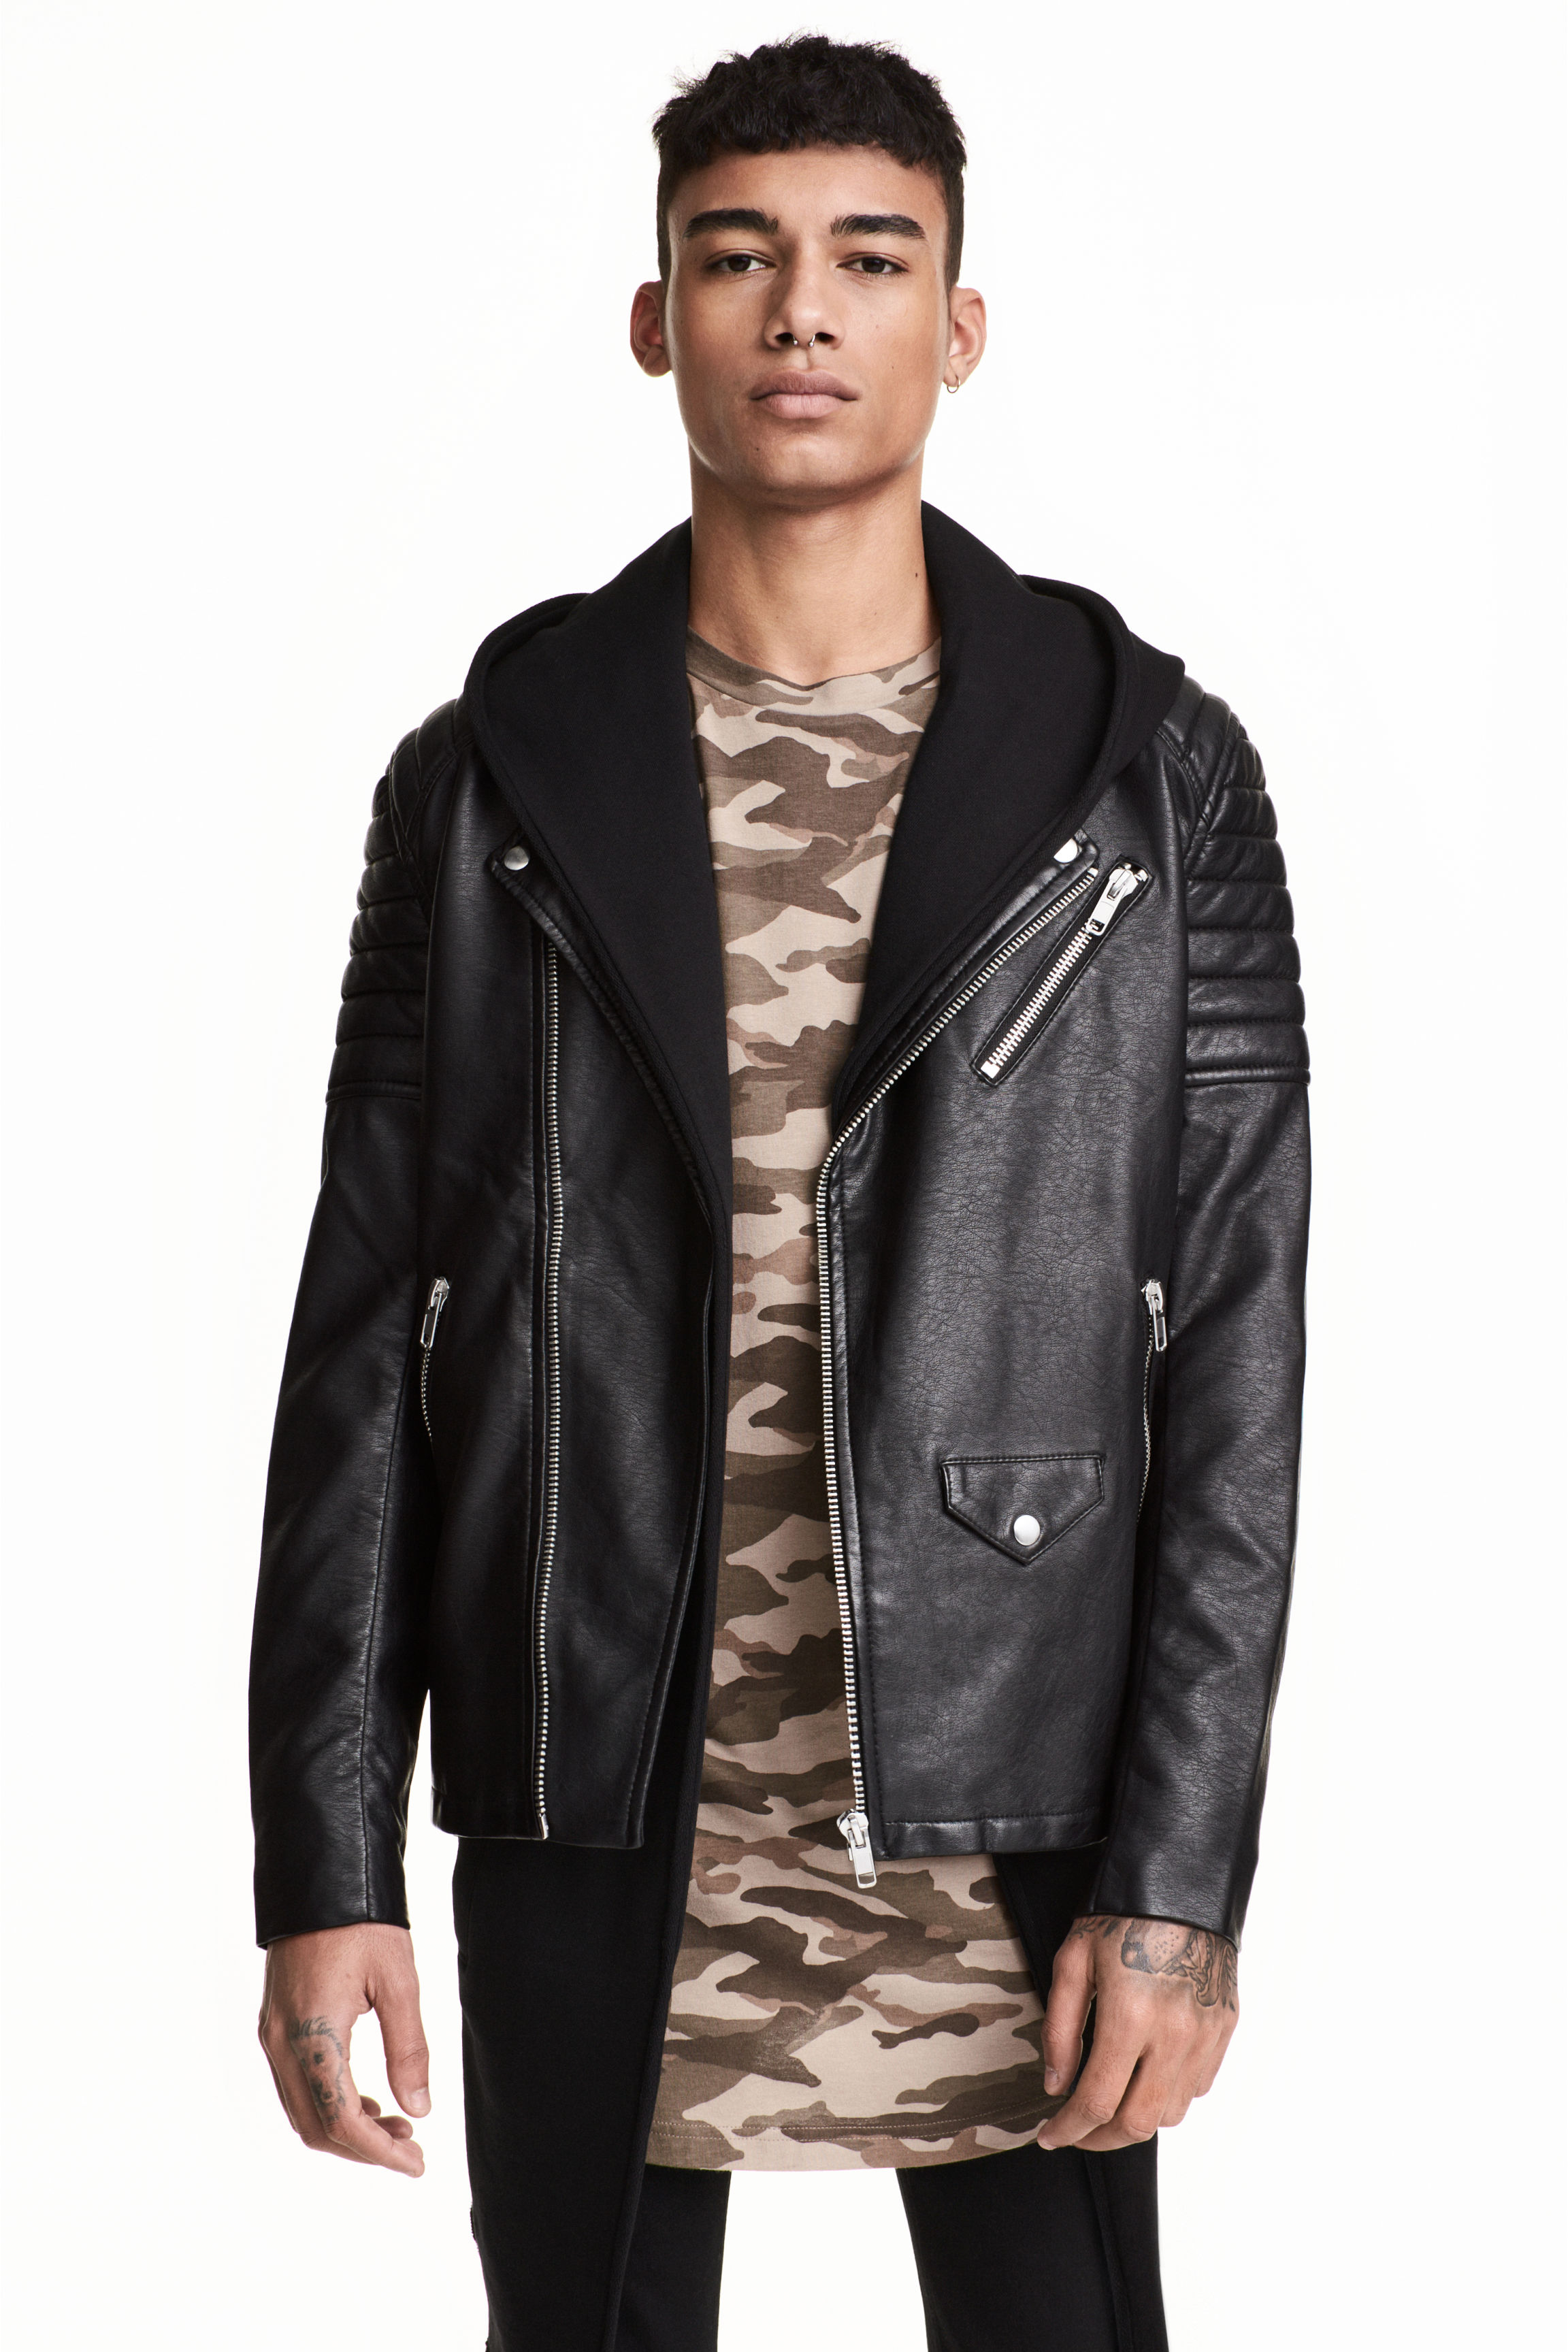 Men's Jackets & Coats - For all seasons and styles | H&M GB